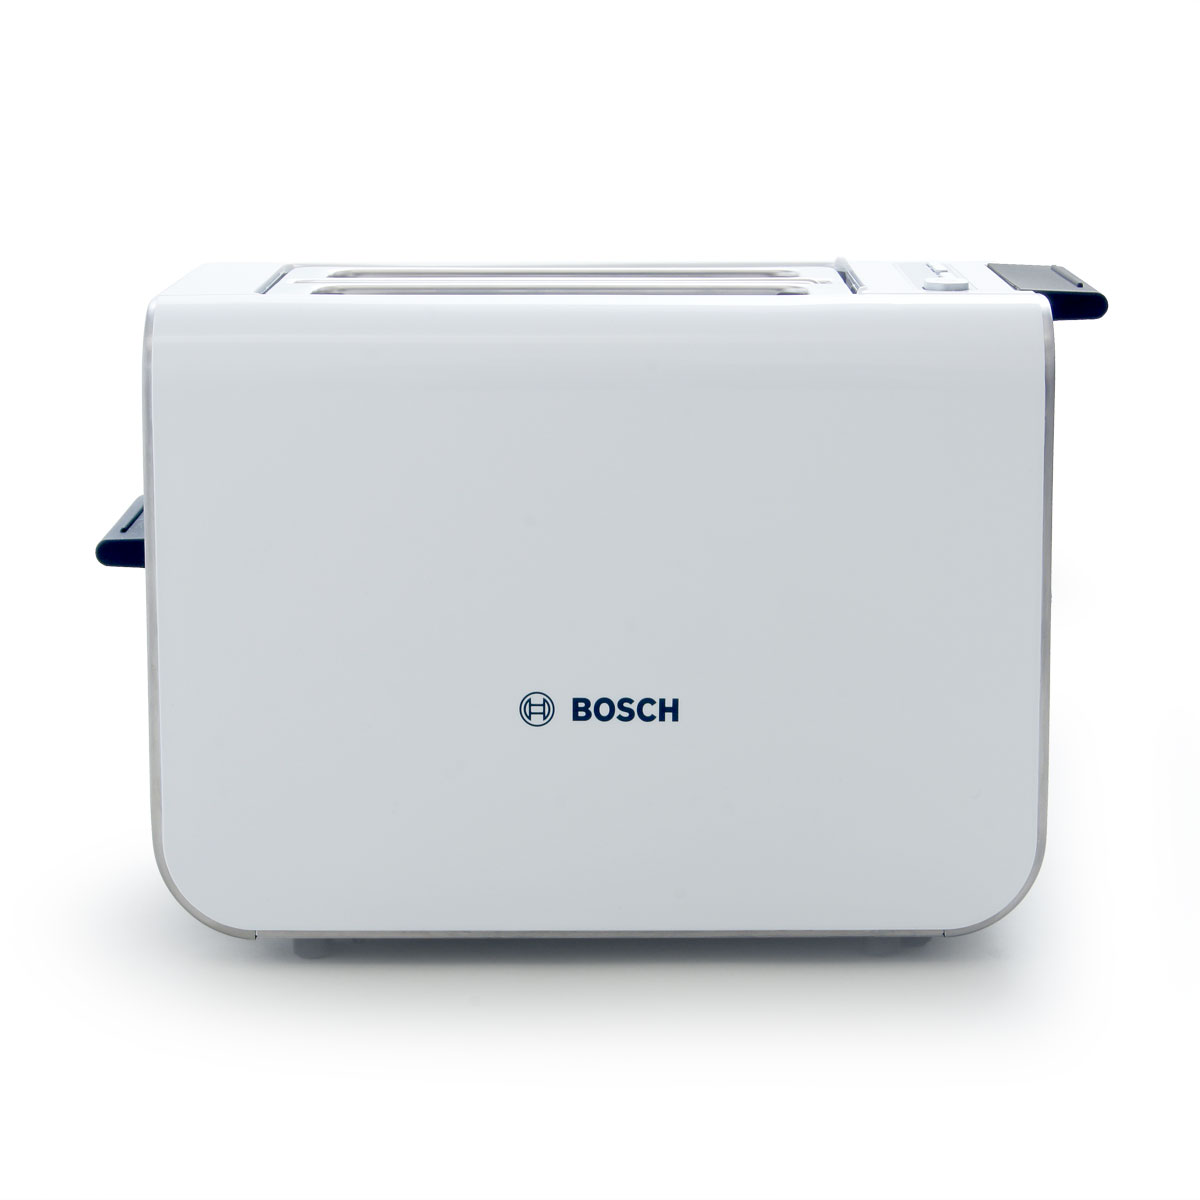 Bosch Small Kitchen Appliances Toaster Bosch Aprivate Collectiona Daniels Erdwiens